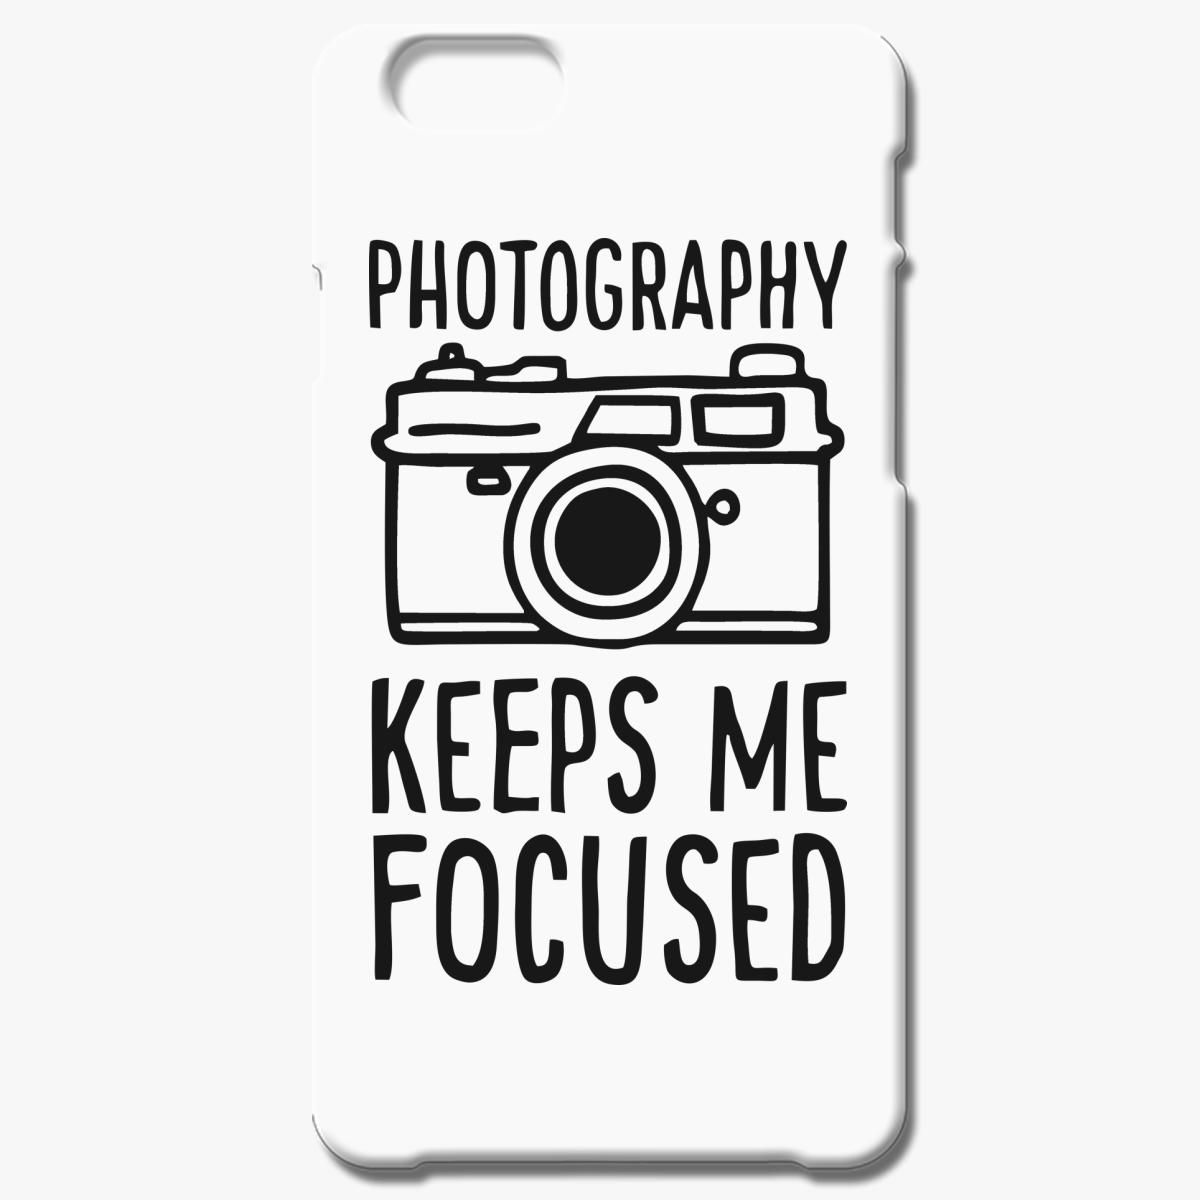 Photography Keeps My Focused Iphone 6 6s Plus Case